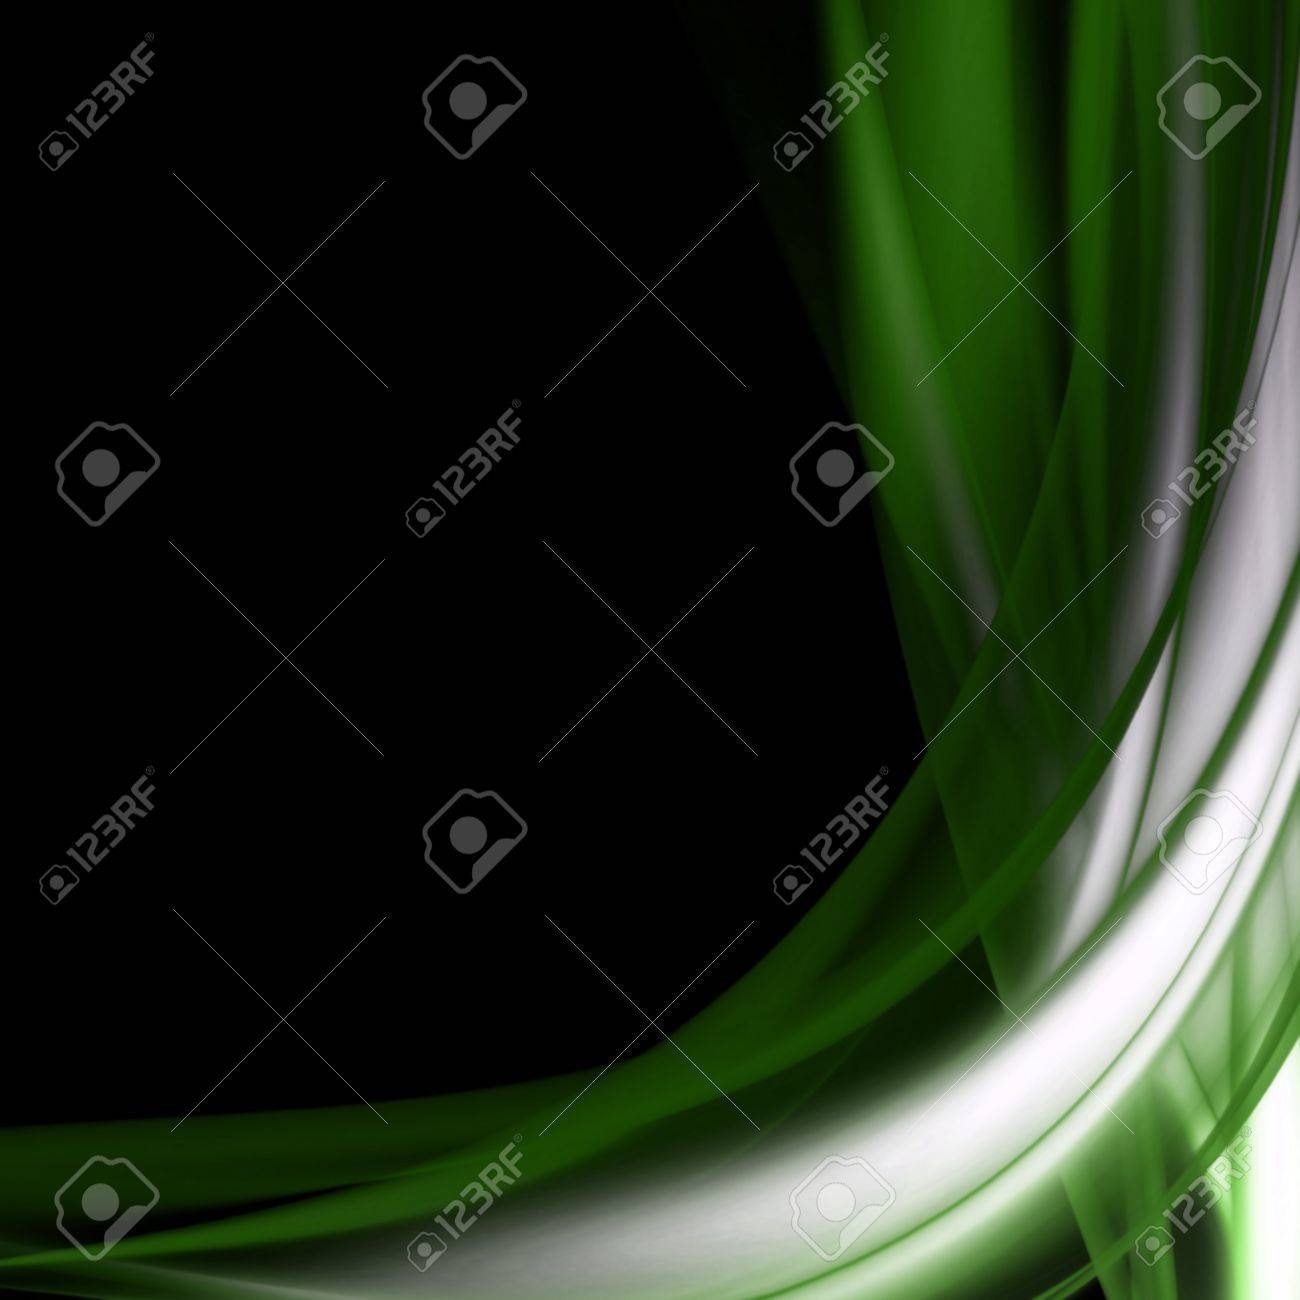 Abstract elegant background design with space for your text Stock Photo - 9333257